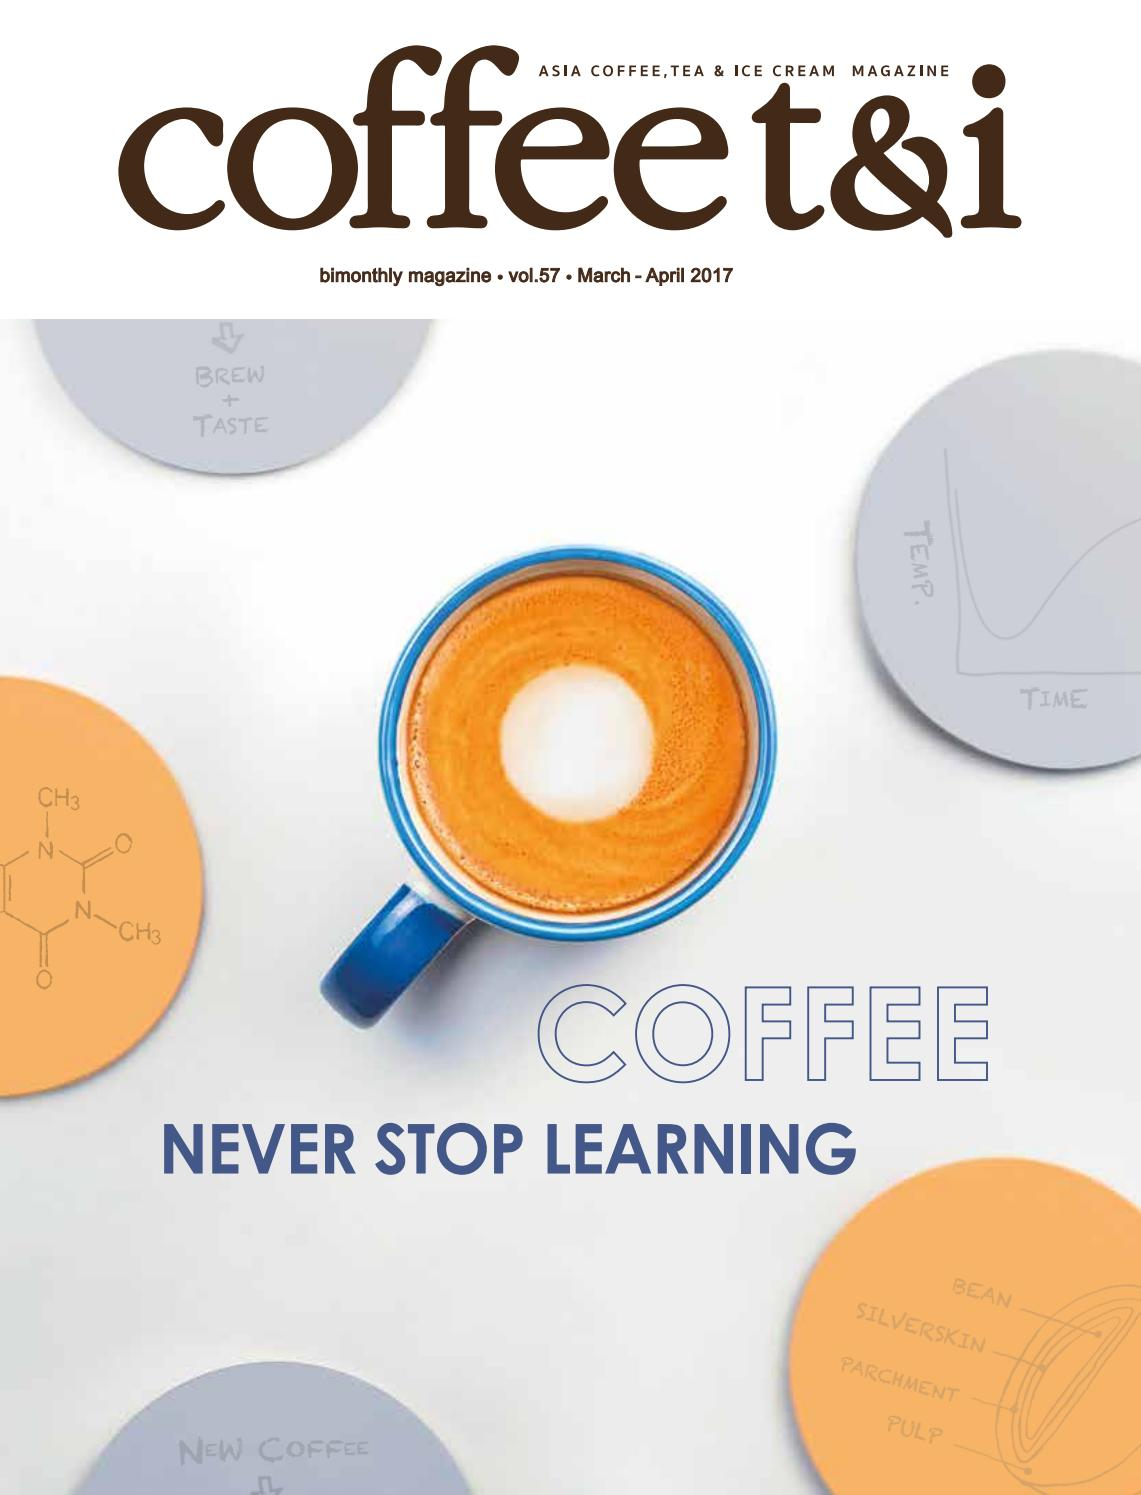 115c2c14f6b Coffee tea&i Magazine #57 by Coffee tea&i - issuu